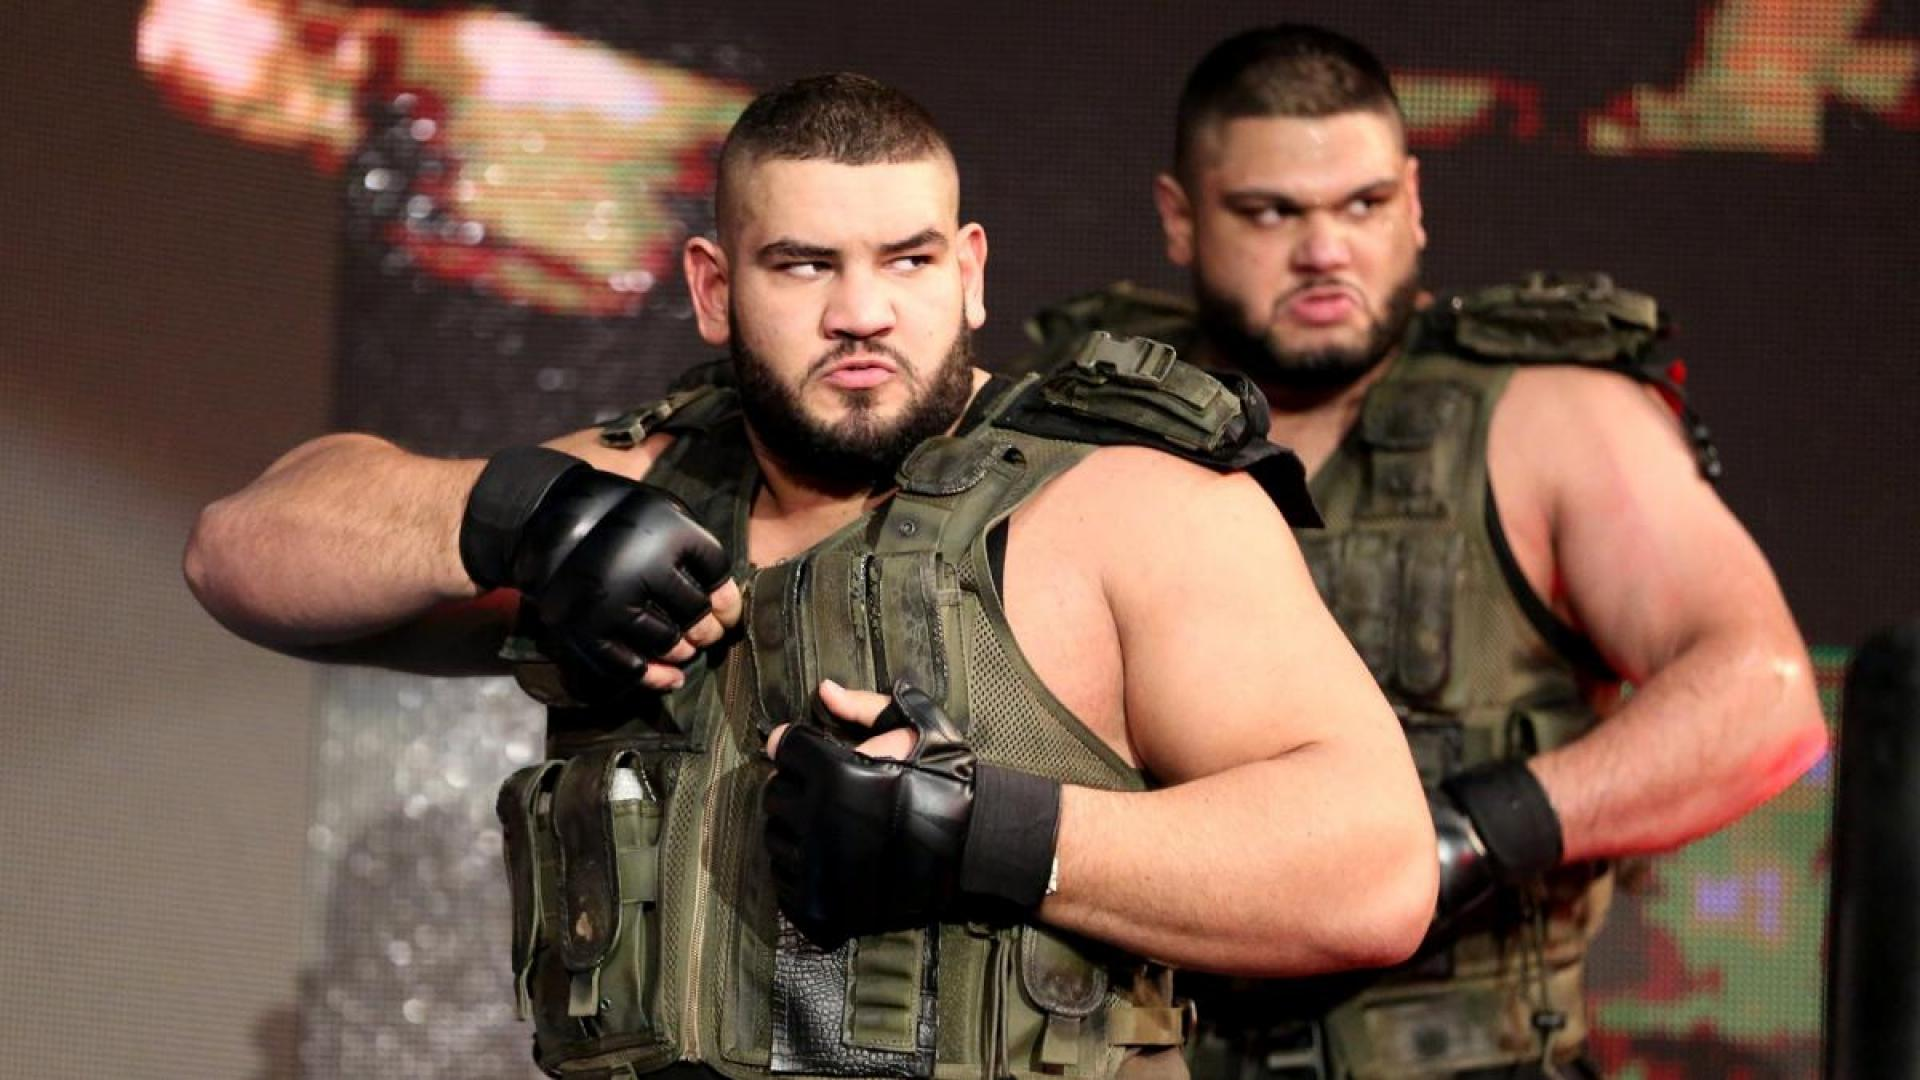 The Authors of Pain Return